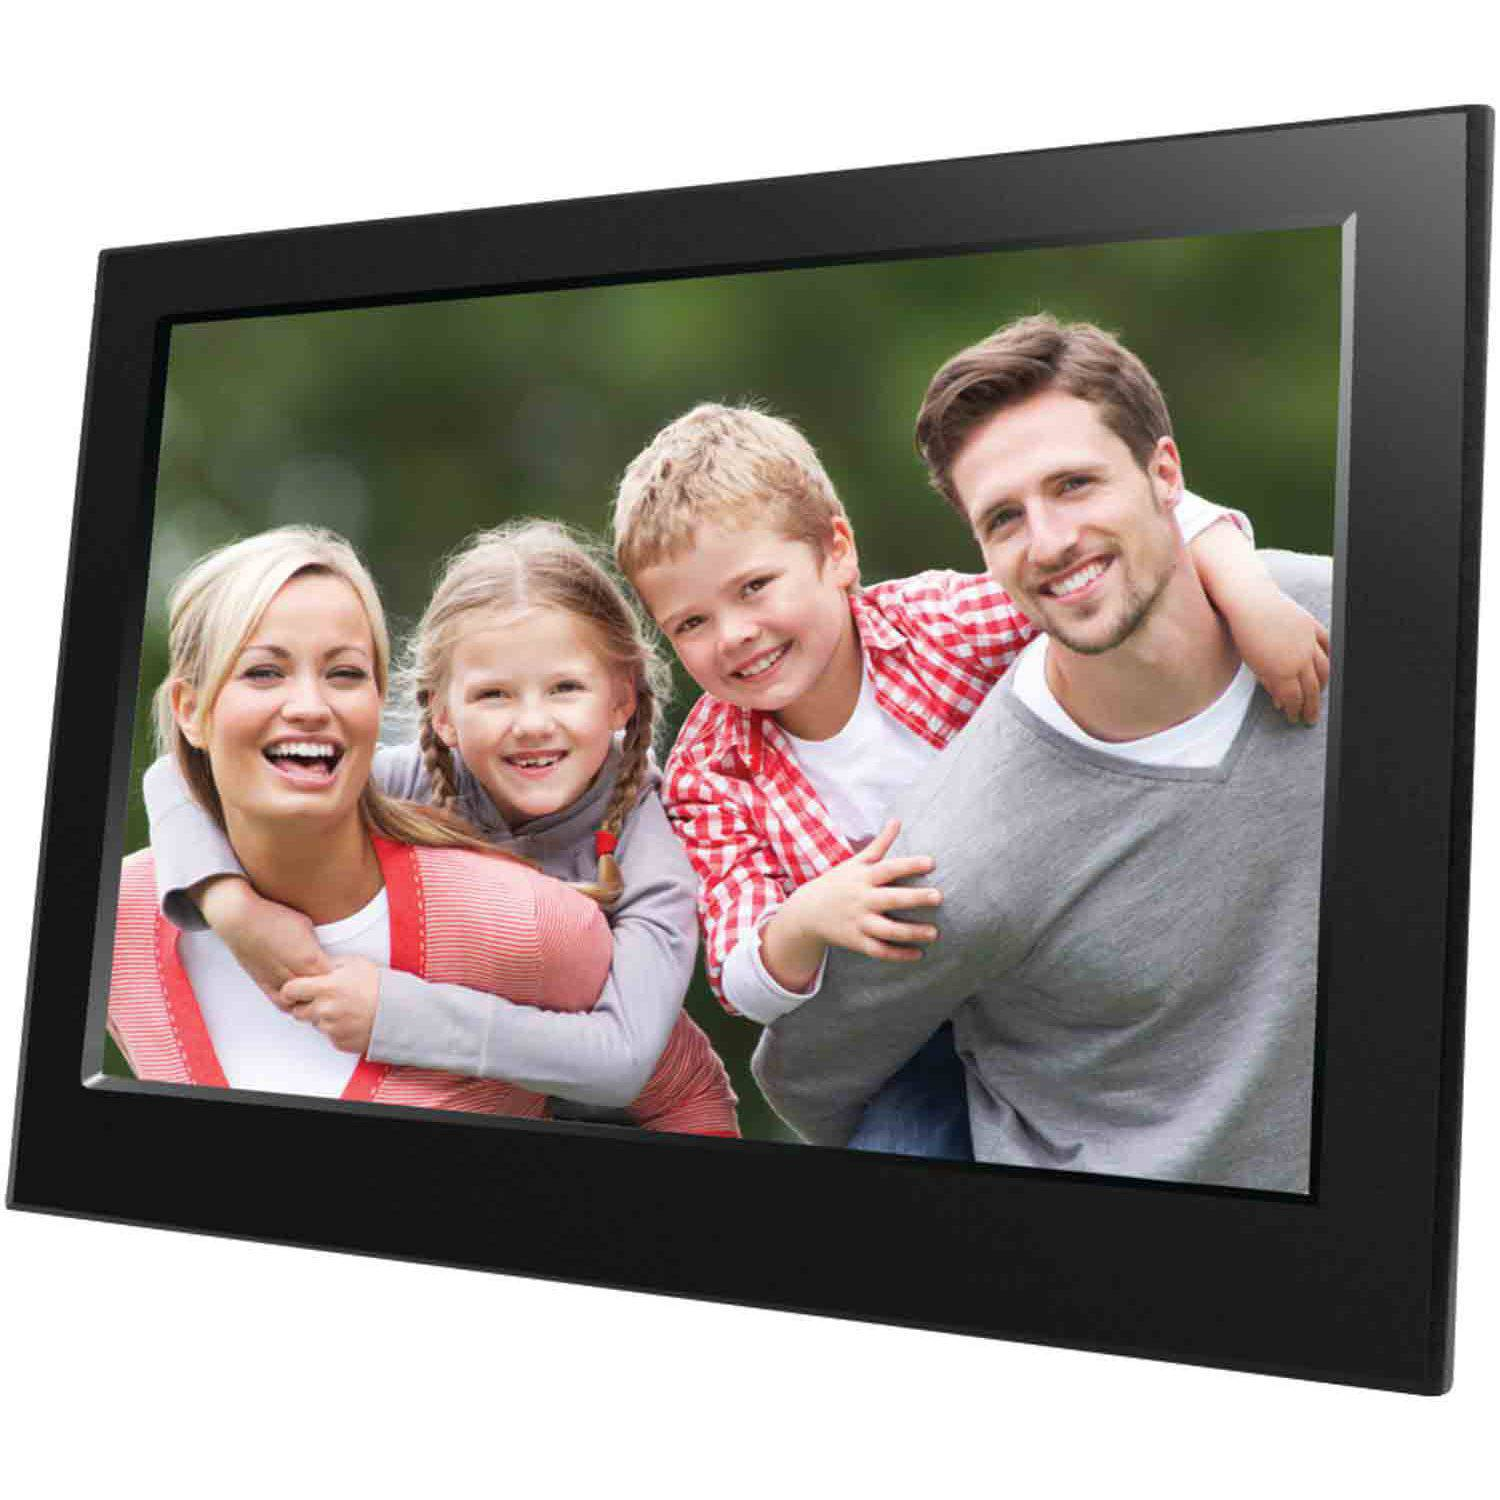 "Naxa NF-900 9"" Digital Photo Frame"